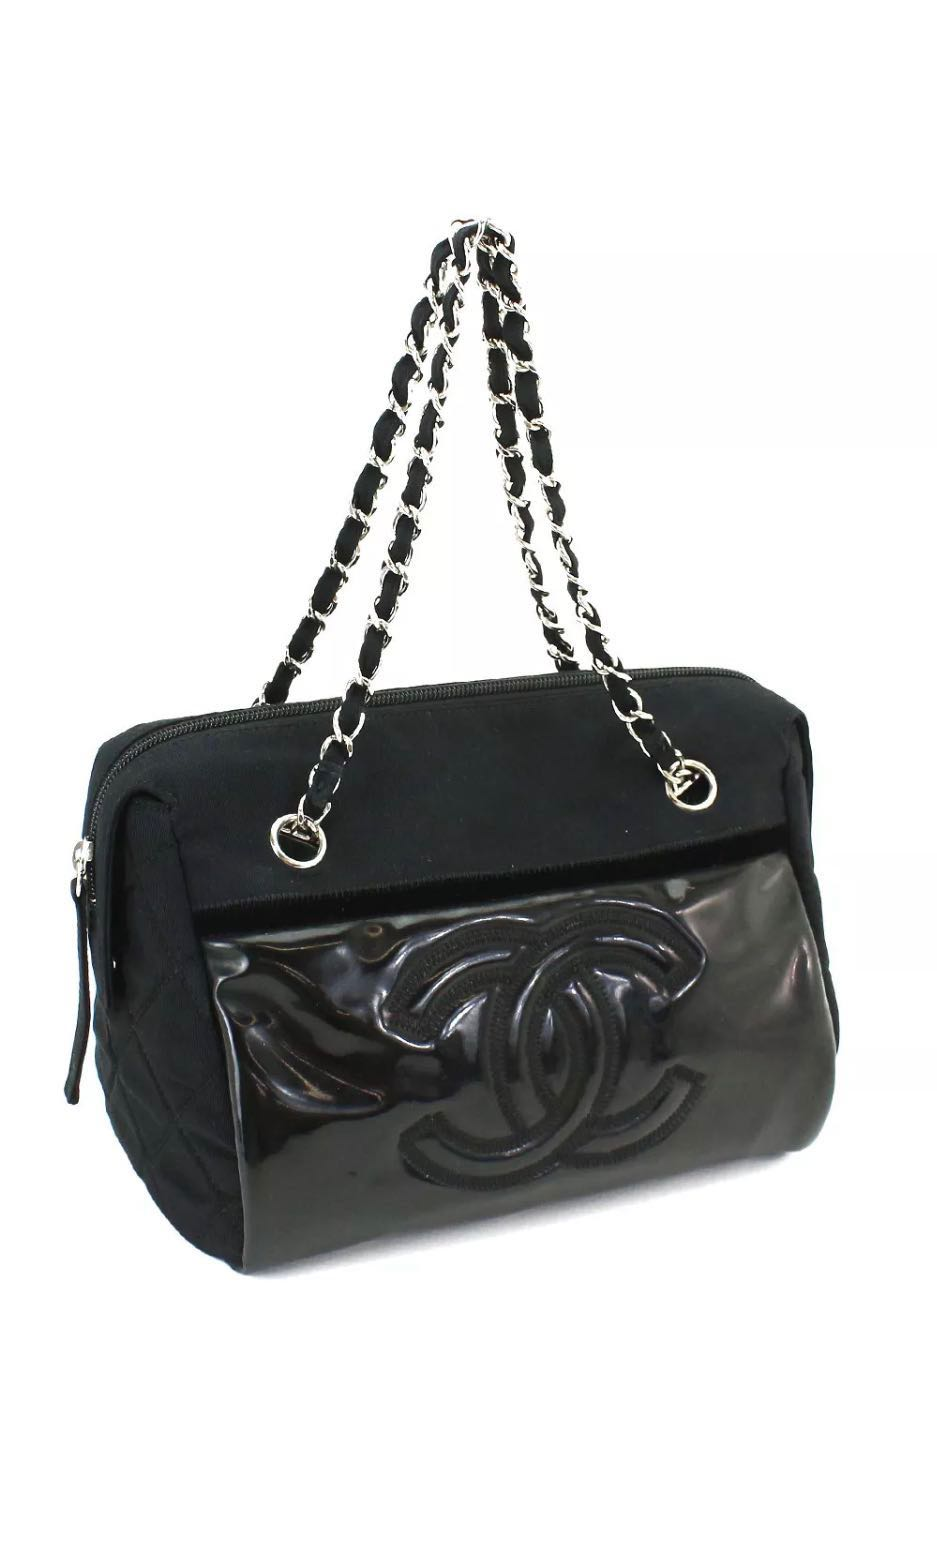 12bd5c2fede8d Today only! Authentic Chanel bag